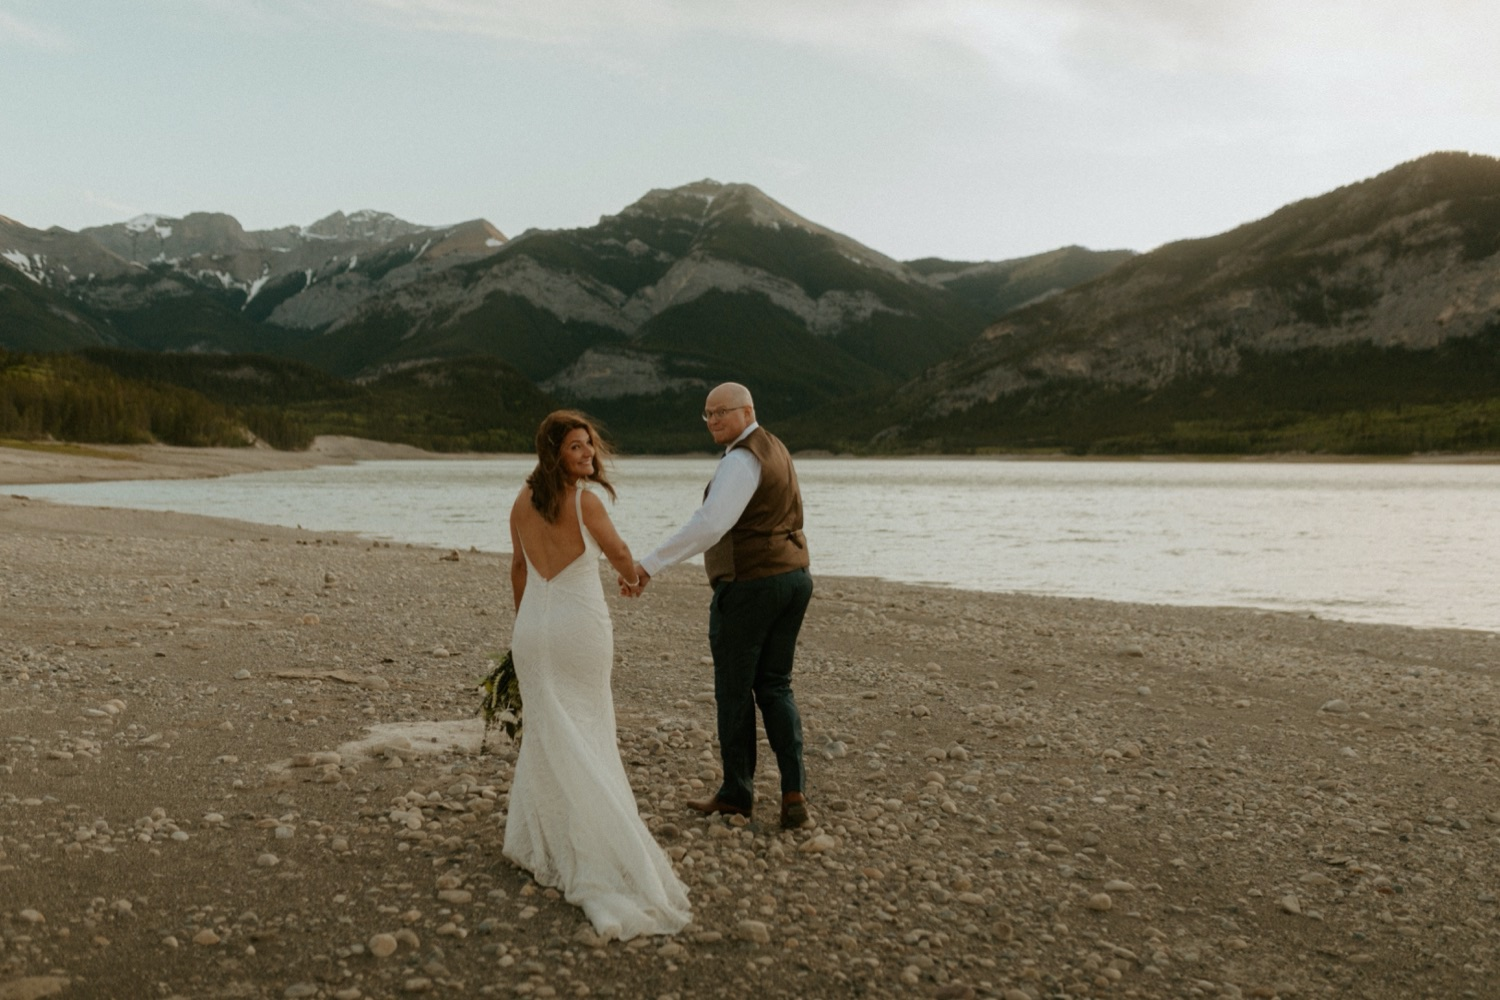 Kananaskis Mountain Elopement, Kananaskis Mountain Elopement with their Dog, Kananaskis summer elopement, kananaskis summer wedding, kananaskis elopement, kananaskis wedding, wedding with dog, elopement with dog present, where to get married in kananaskis, where to elope in kananaskis, kananaskis wedding ceremony, kananaskis elopement photographer, kananaskis elopement photographer, Alberta wedding and elopement photographer